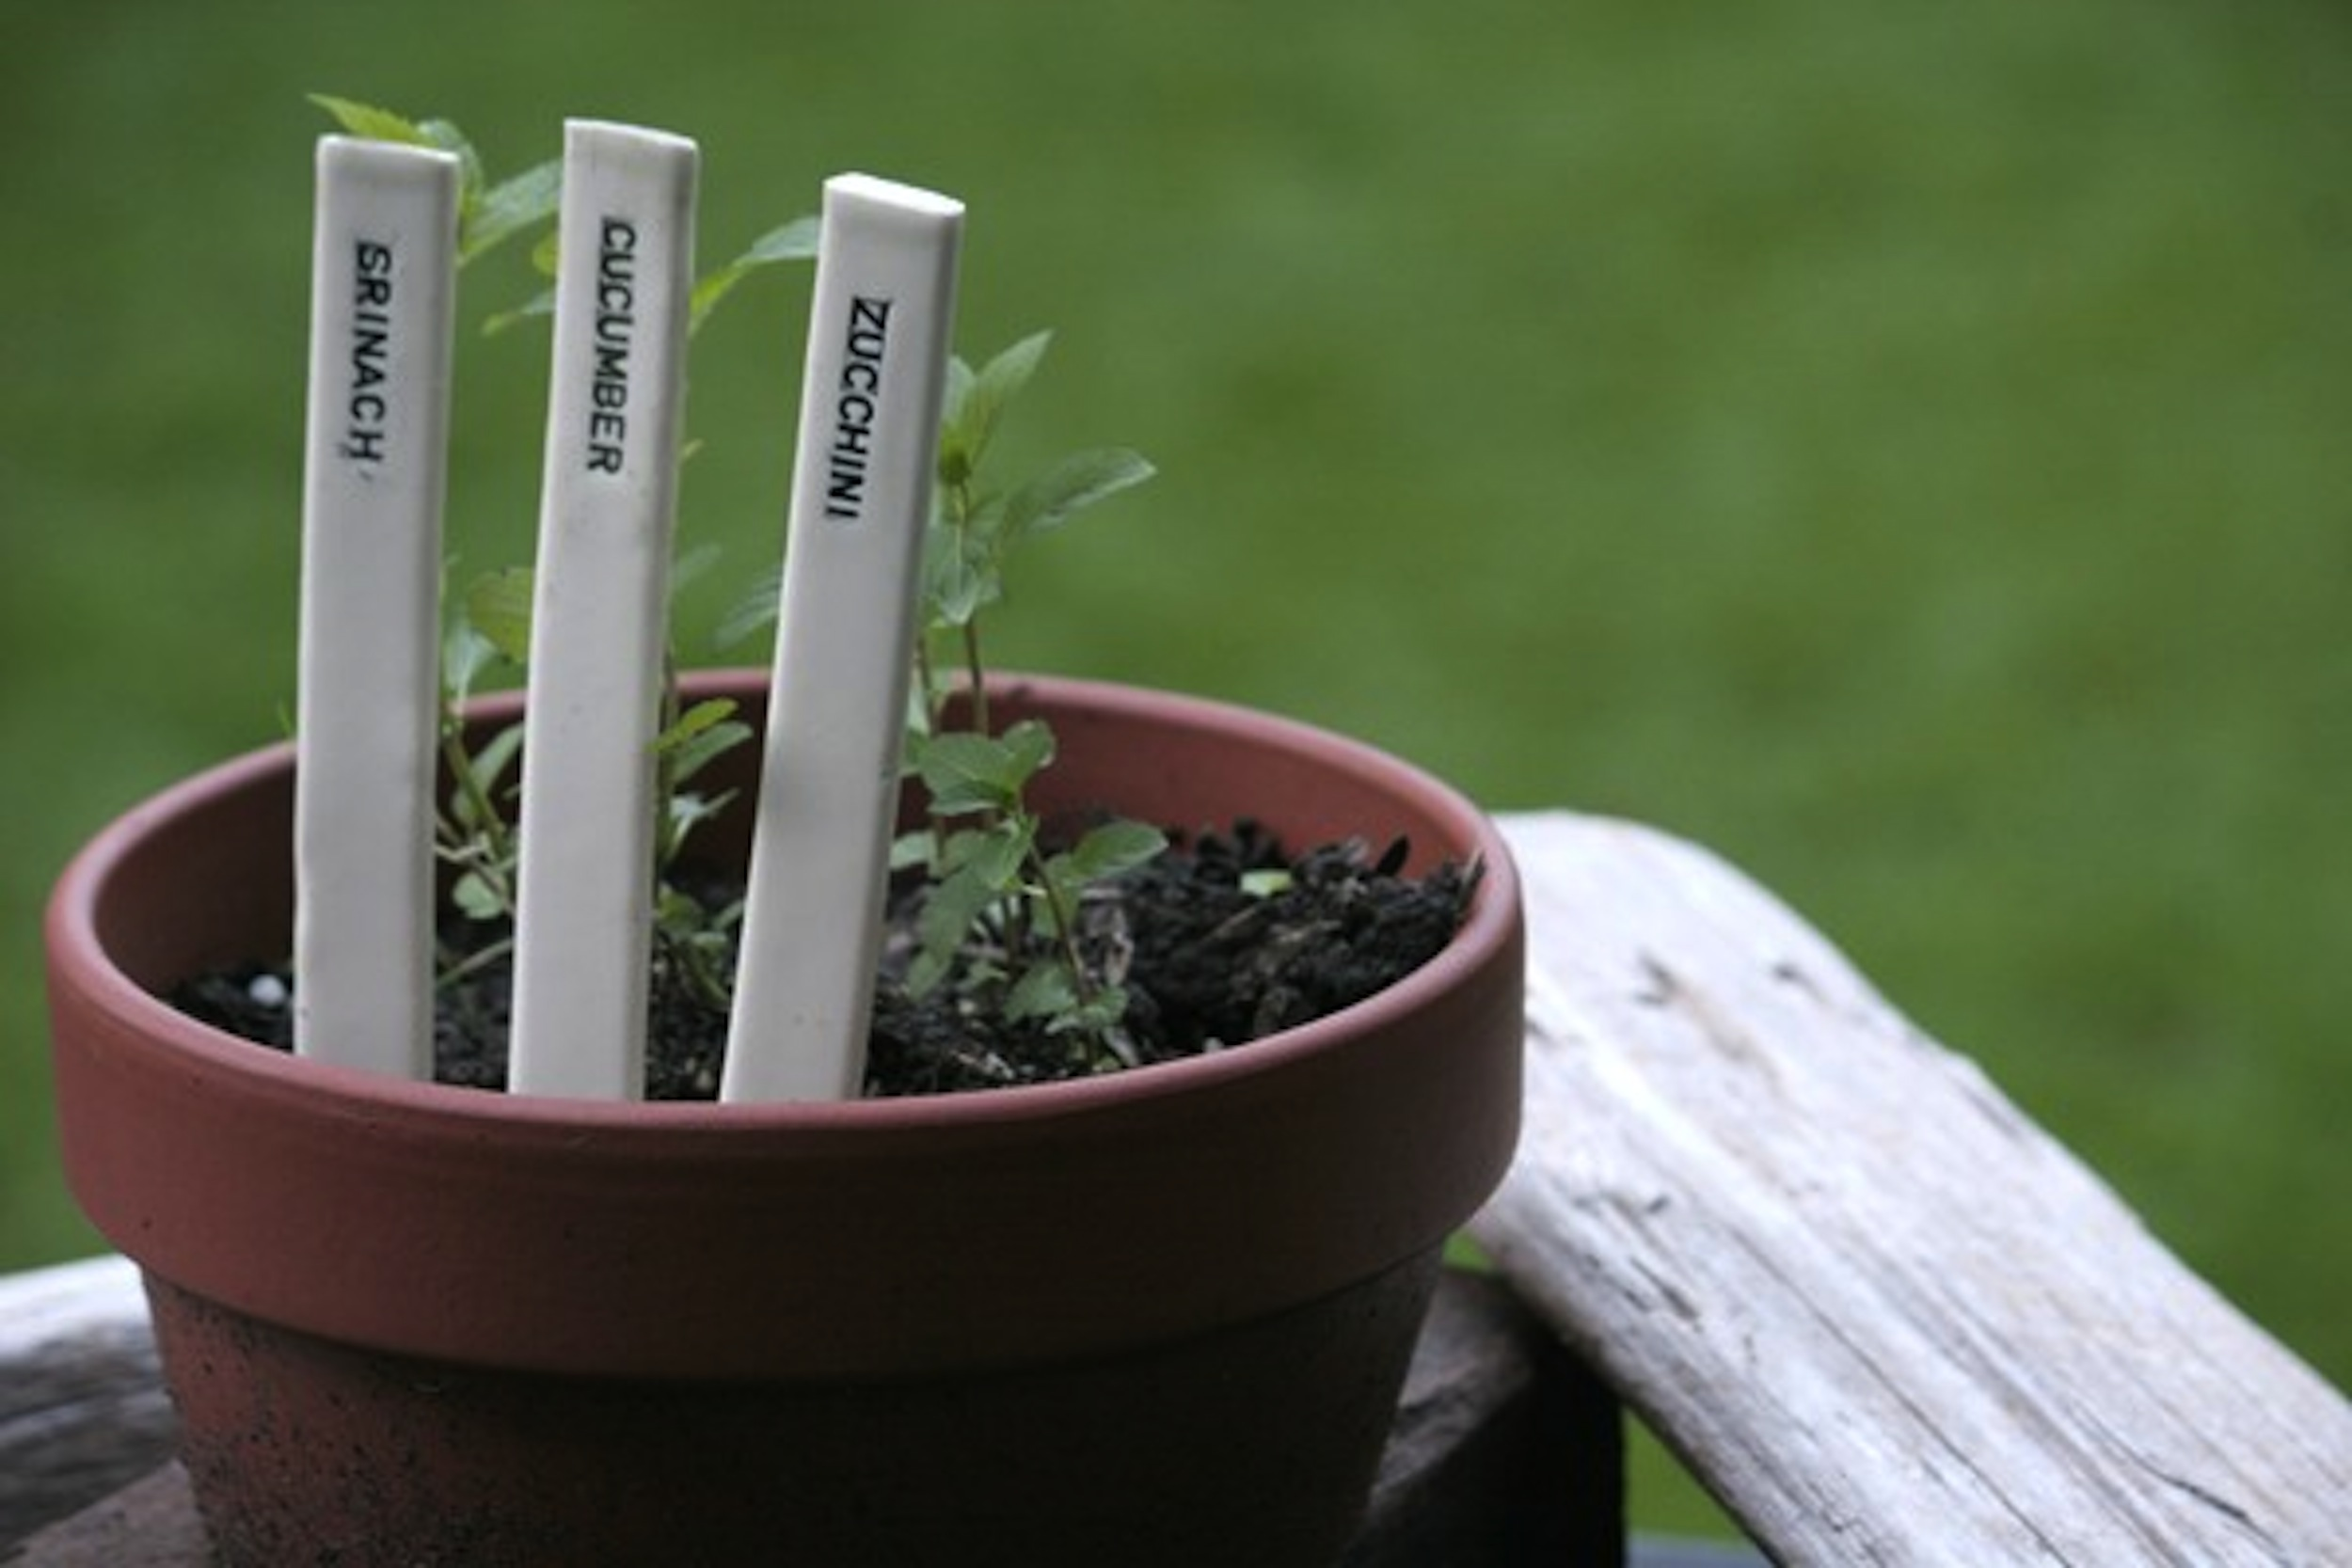 Captivating Hand Crafted Ceramic Garden Markers